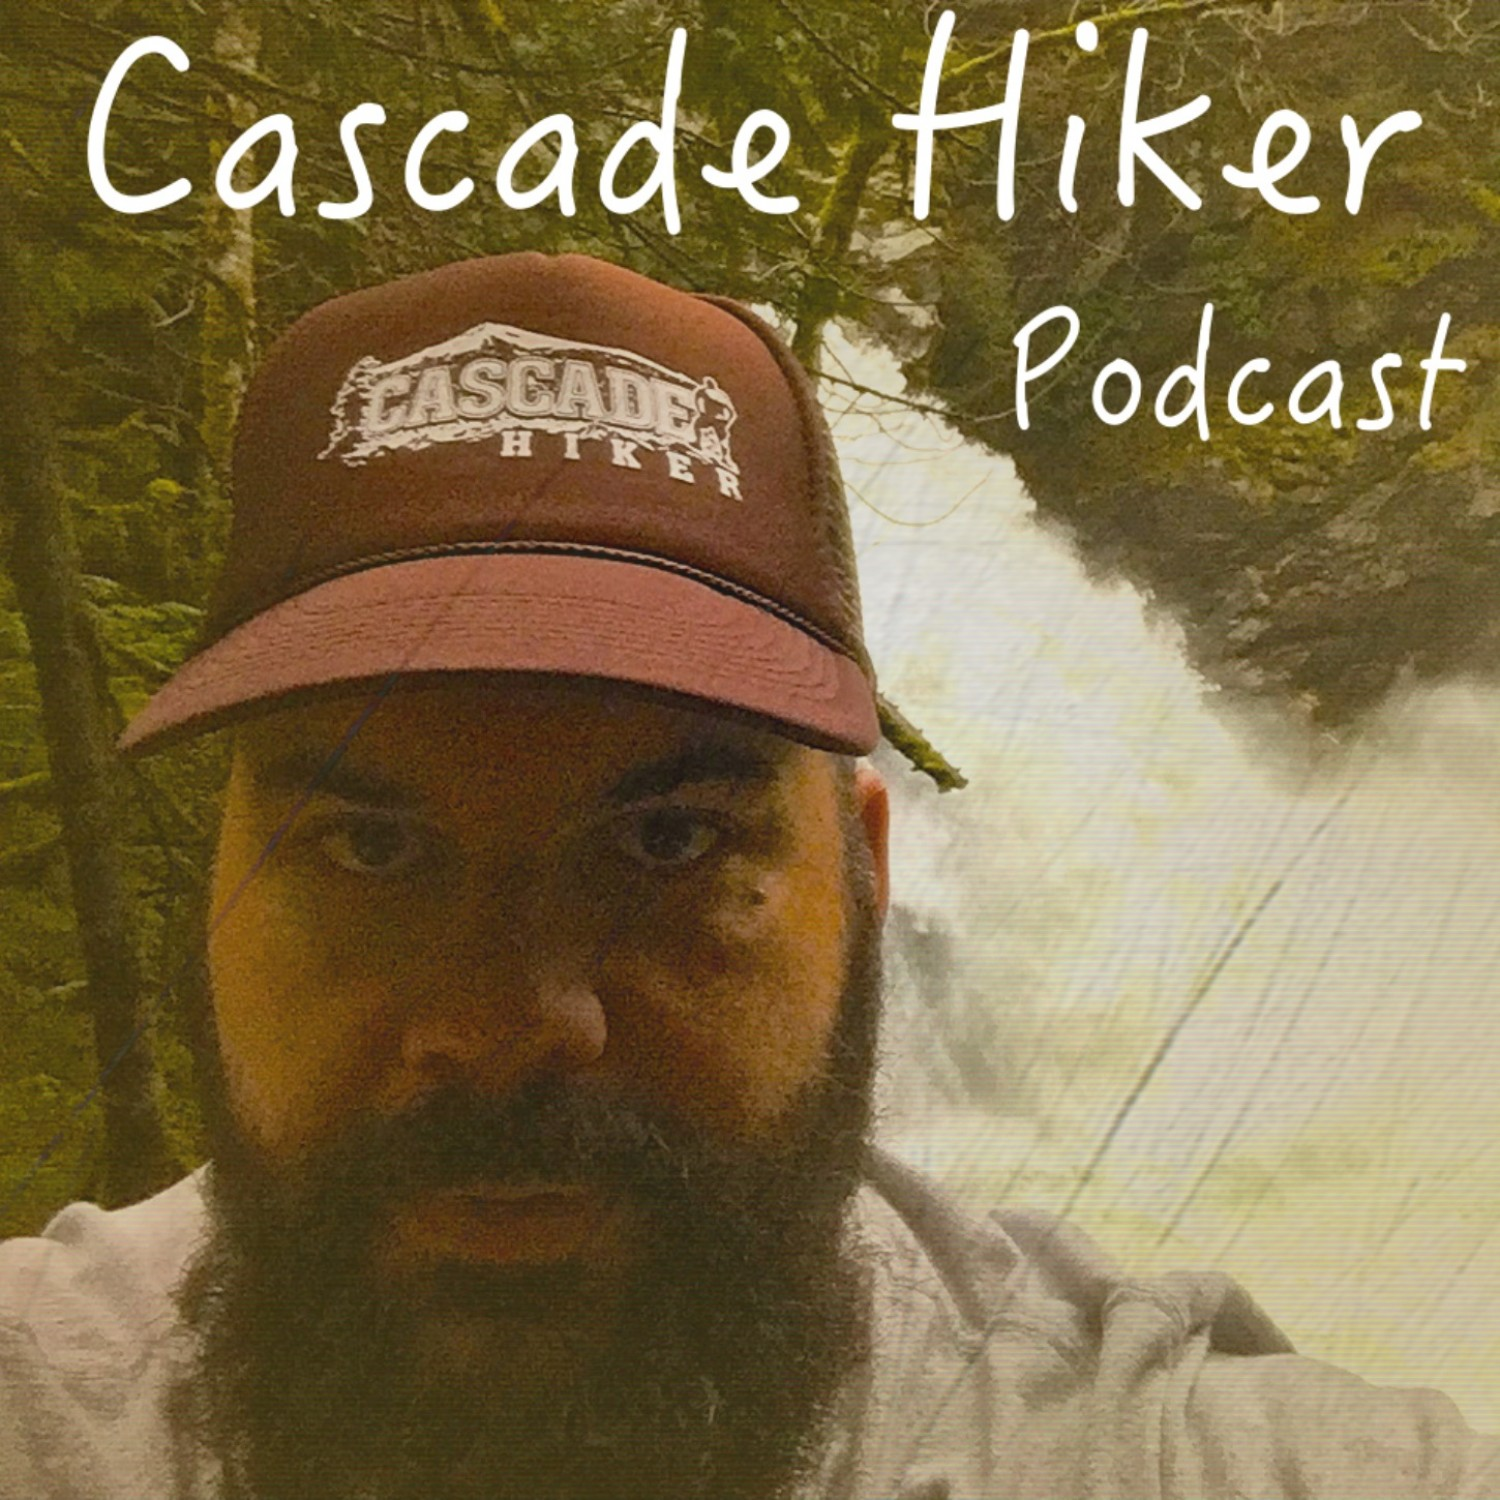 Cascade Hiker Podcast - Inspiring you to get on the trail and hike